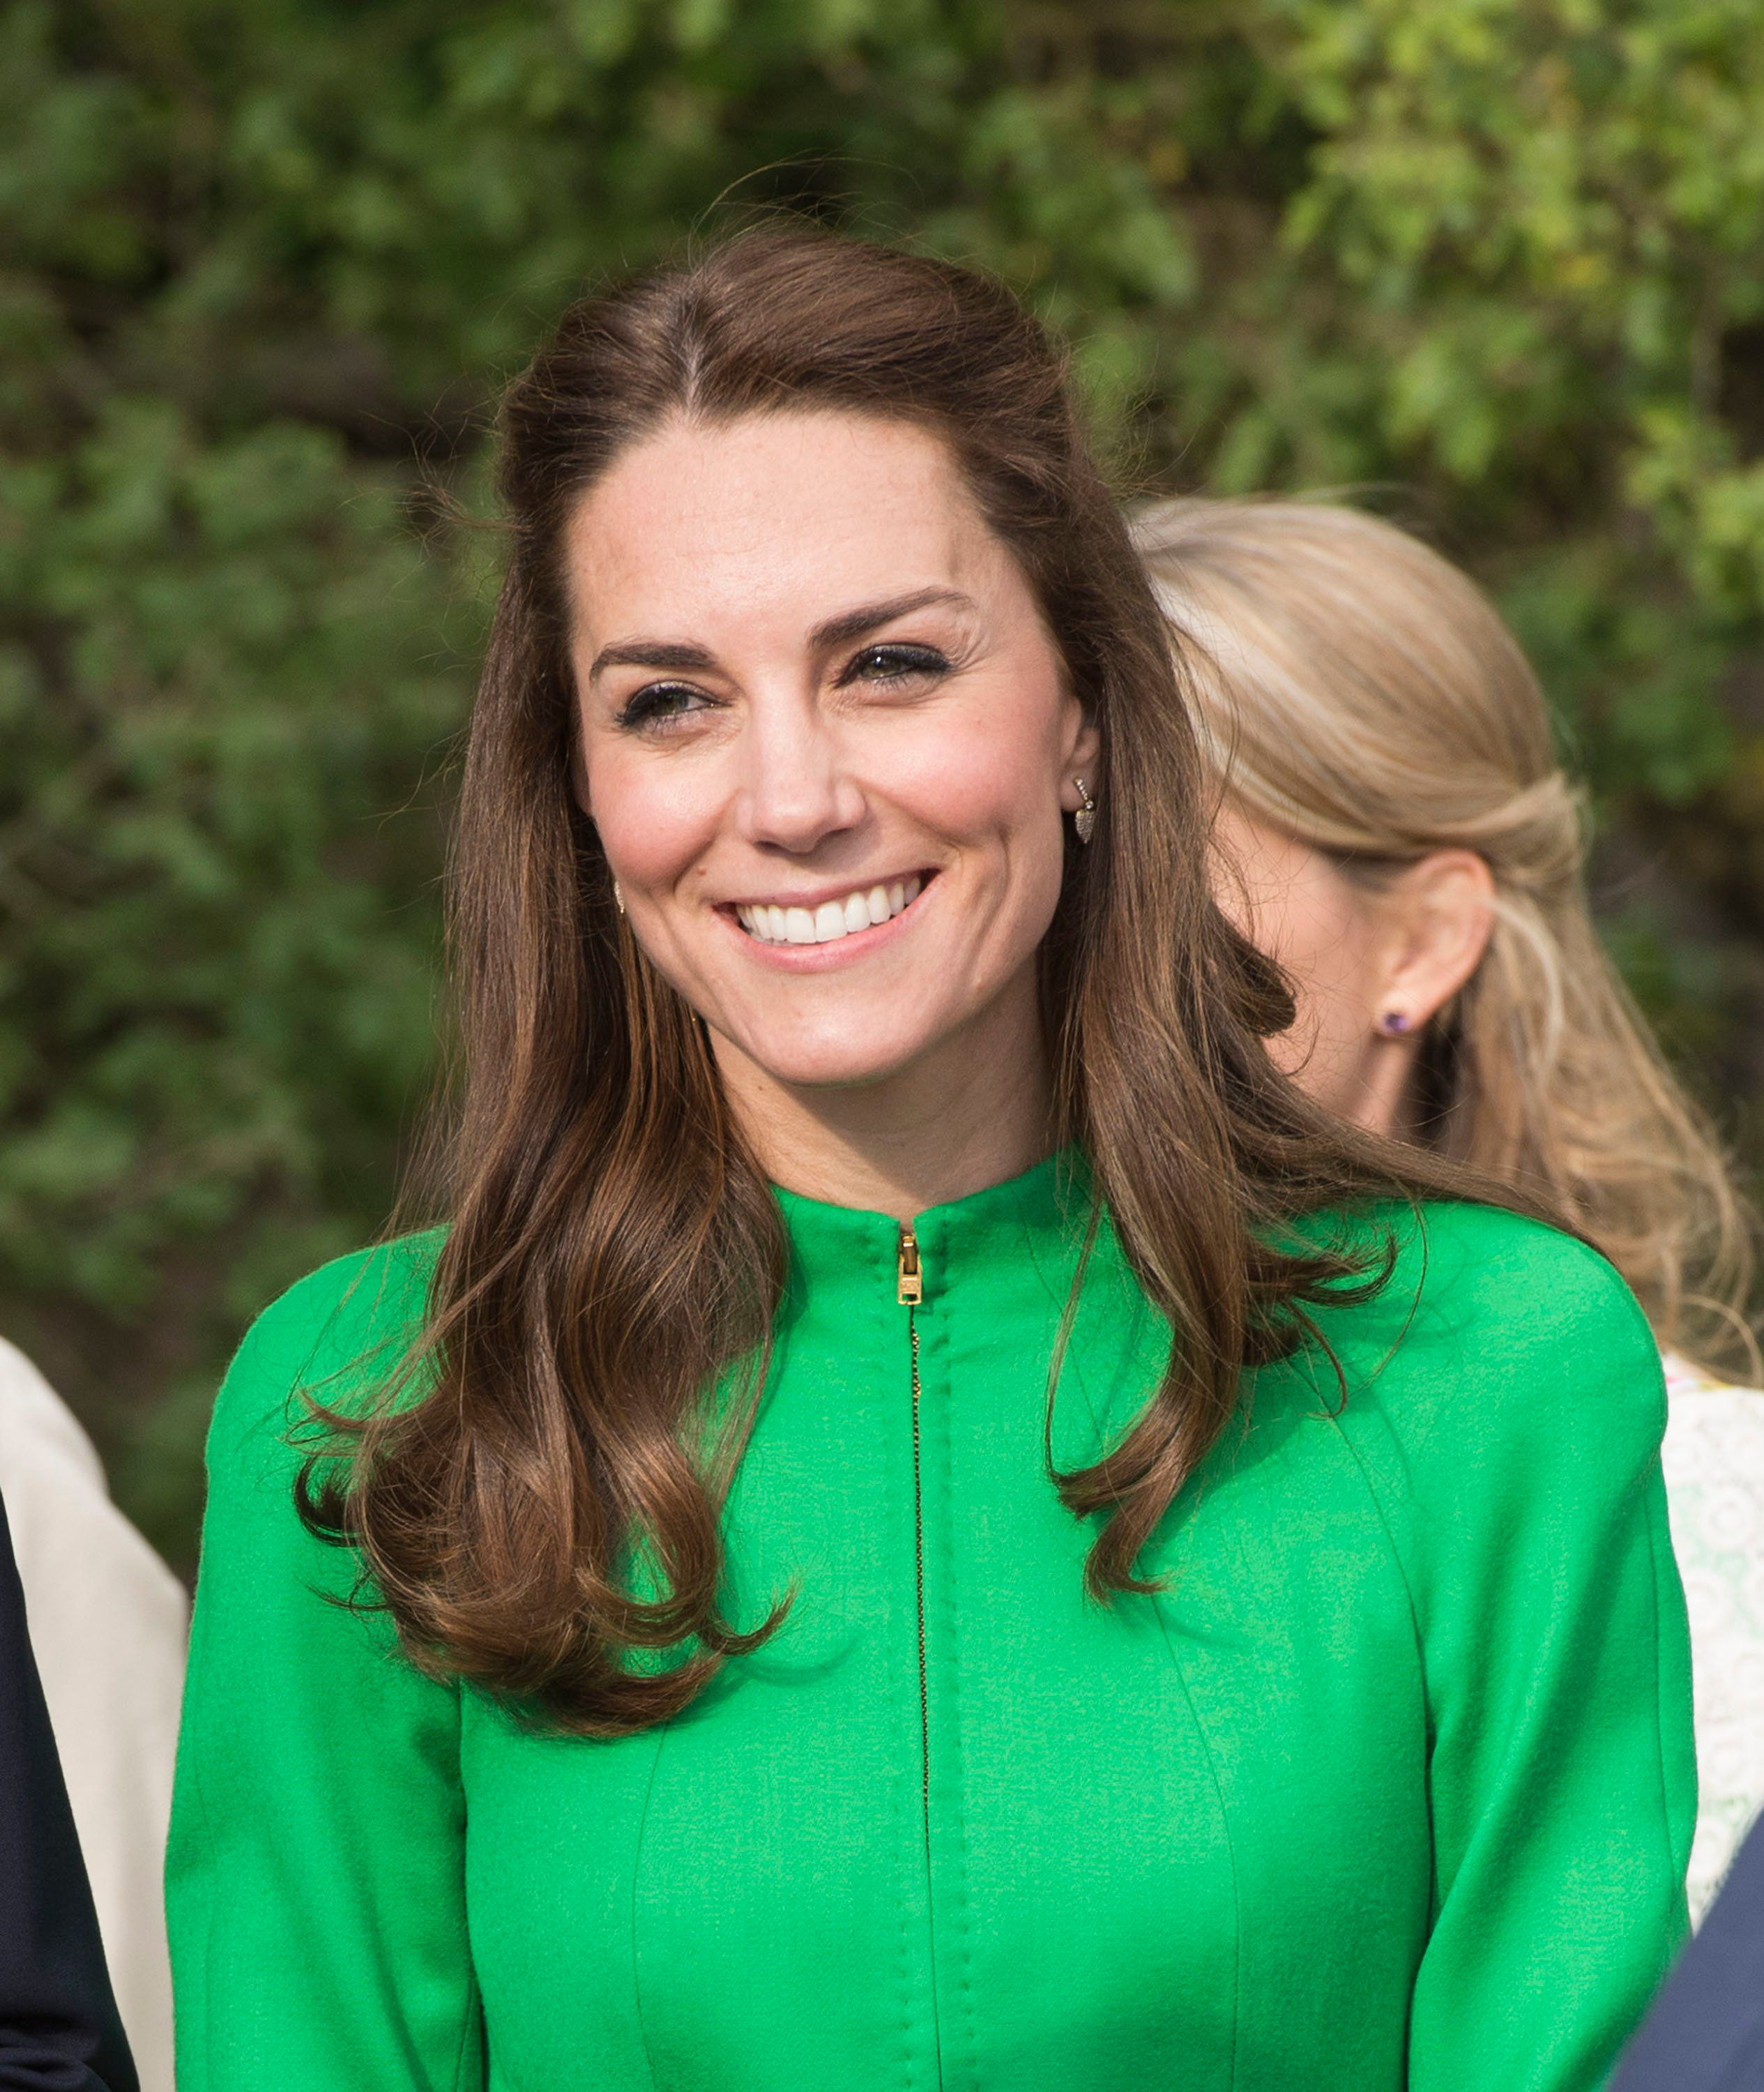 Duchess Of Cambridge Writes Heartfelt Letter About Families Facing 'The Most Difficult Times